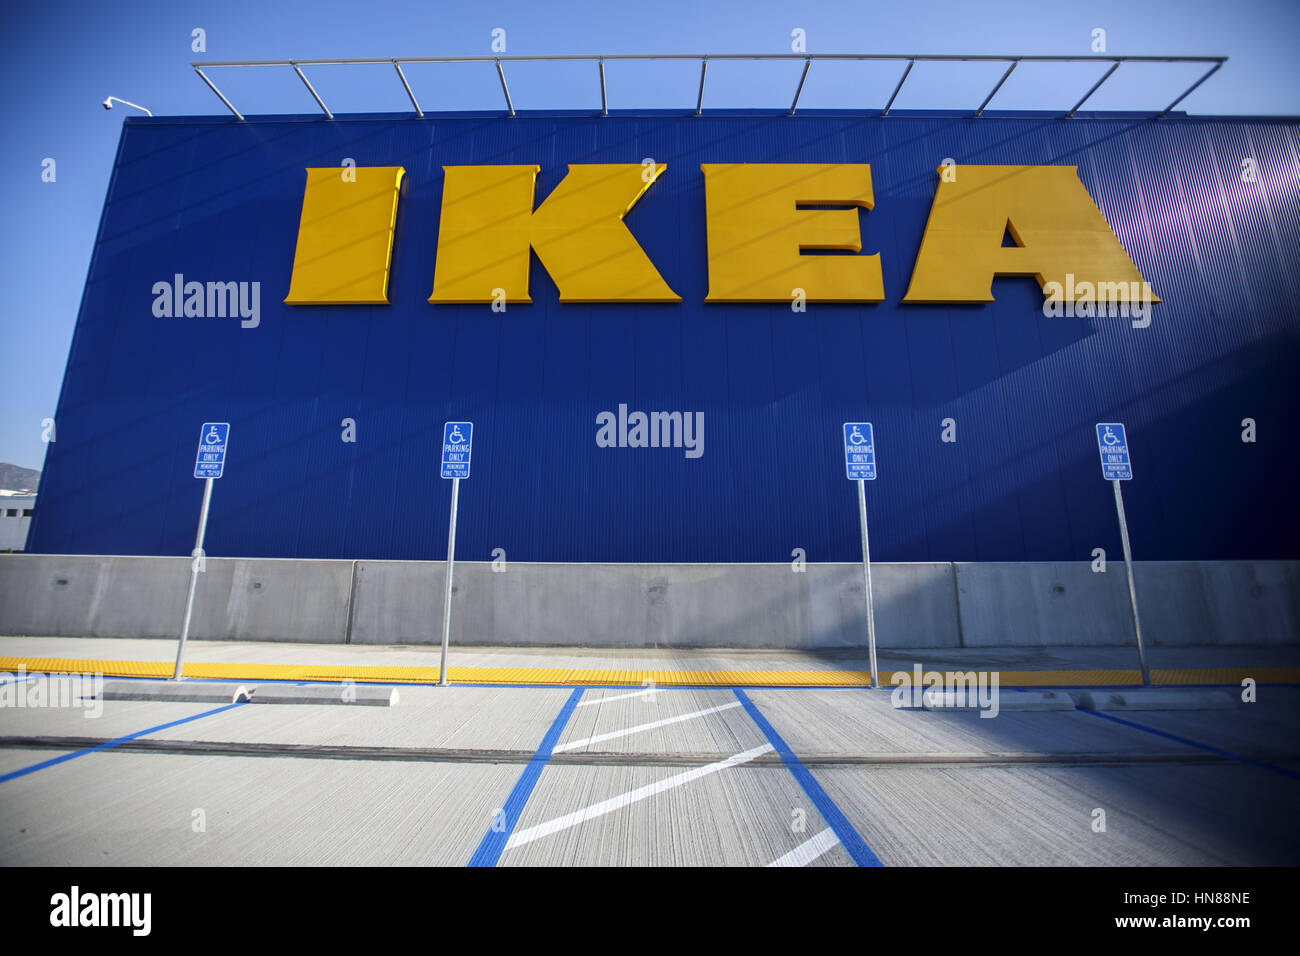 Burbank, CA, USA. 1st Feb, 2017. The IKEA Logo And Handicapped Signage Is  Displayed In The Parking Lot Of The New IKEA Burbank Home Furnishings Store  On ...